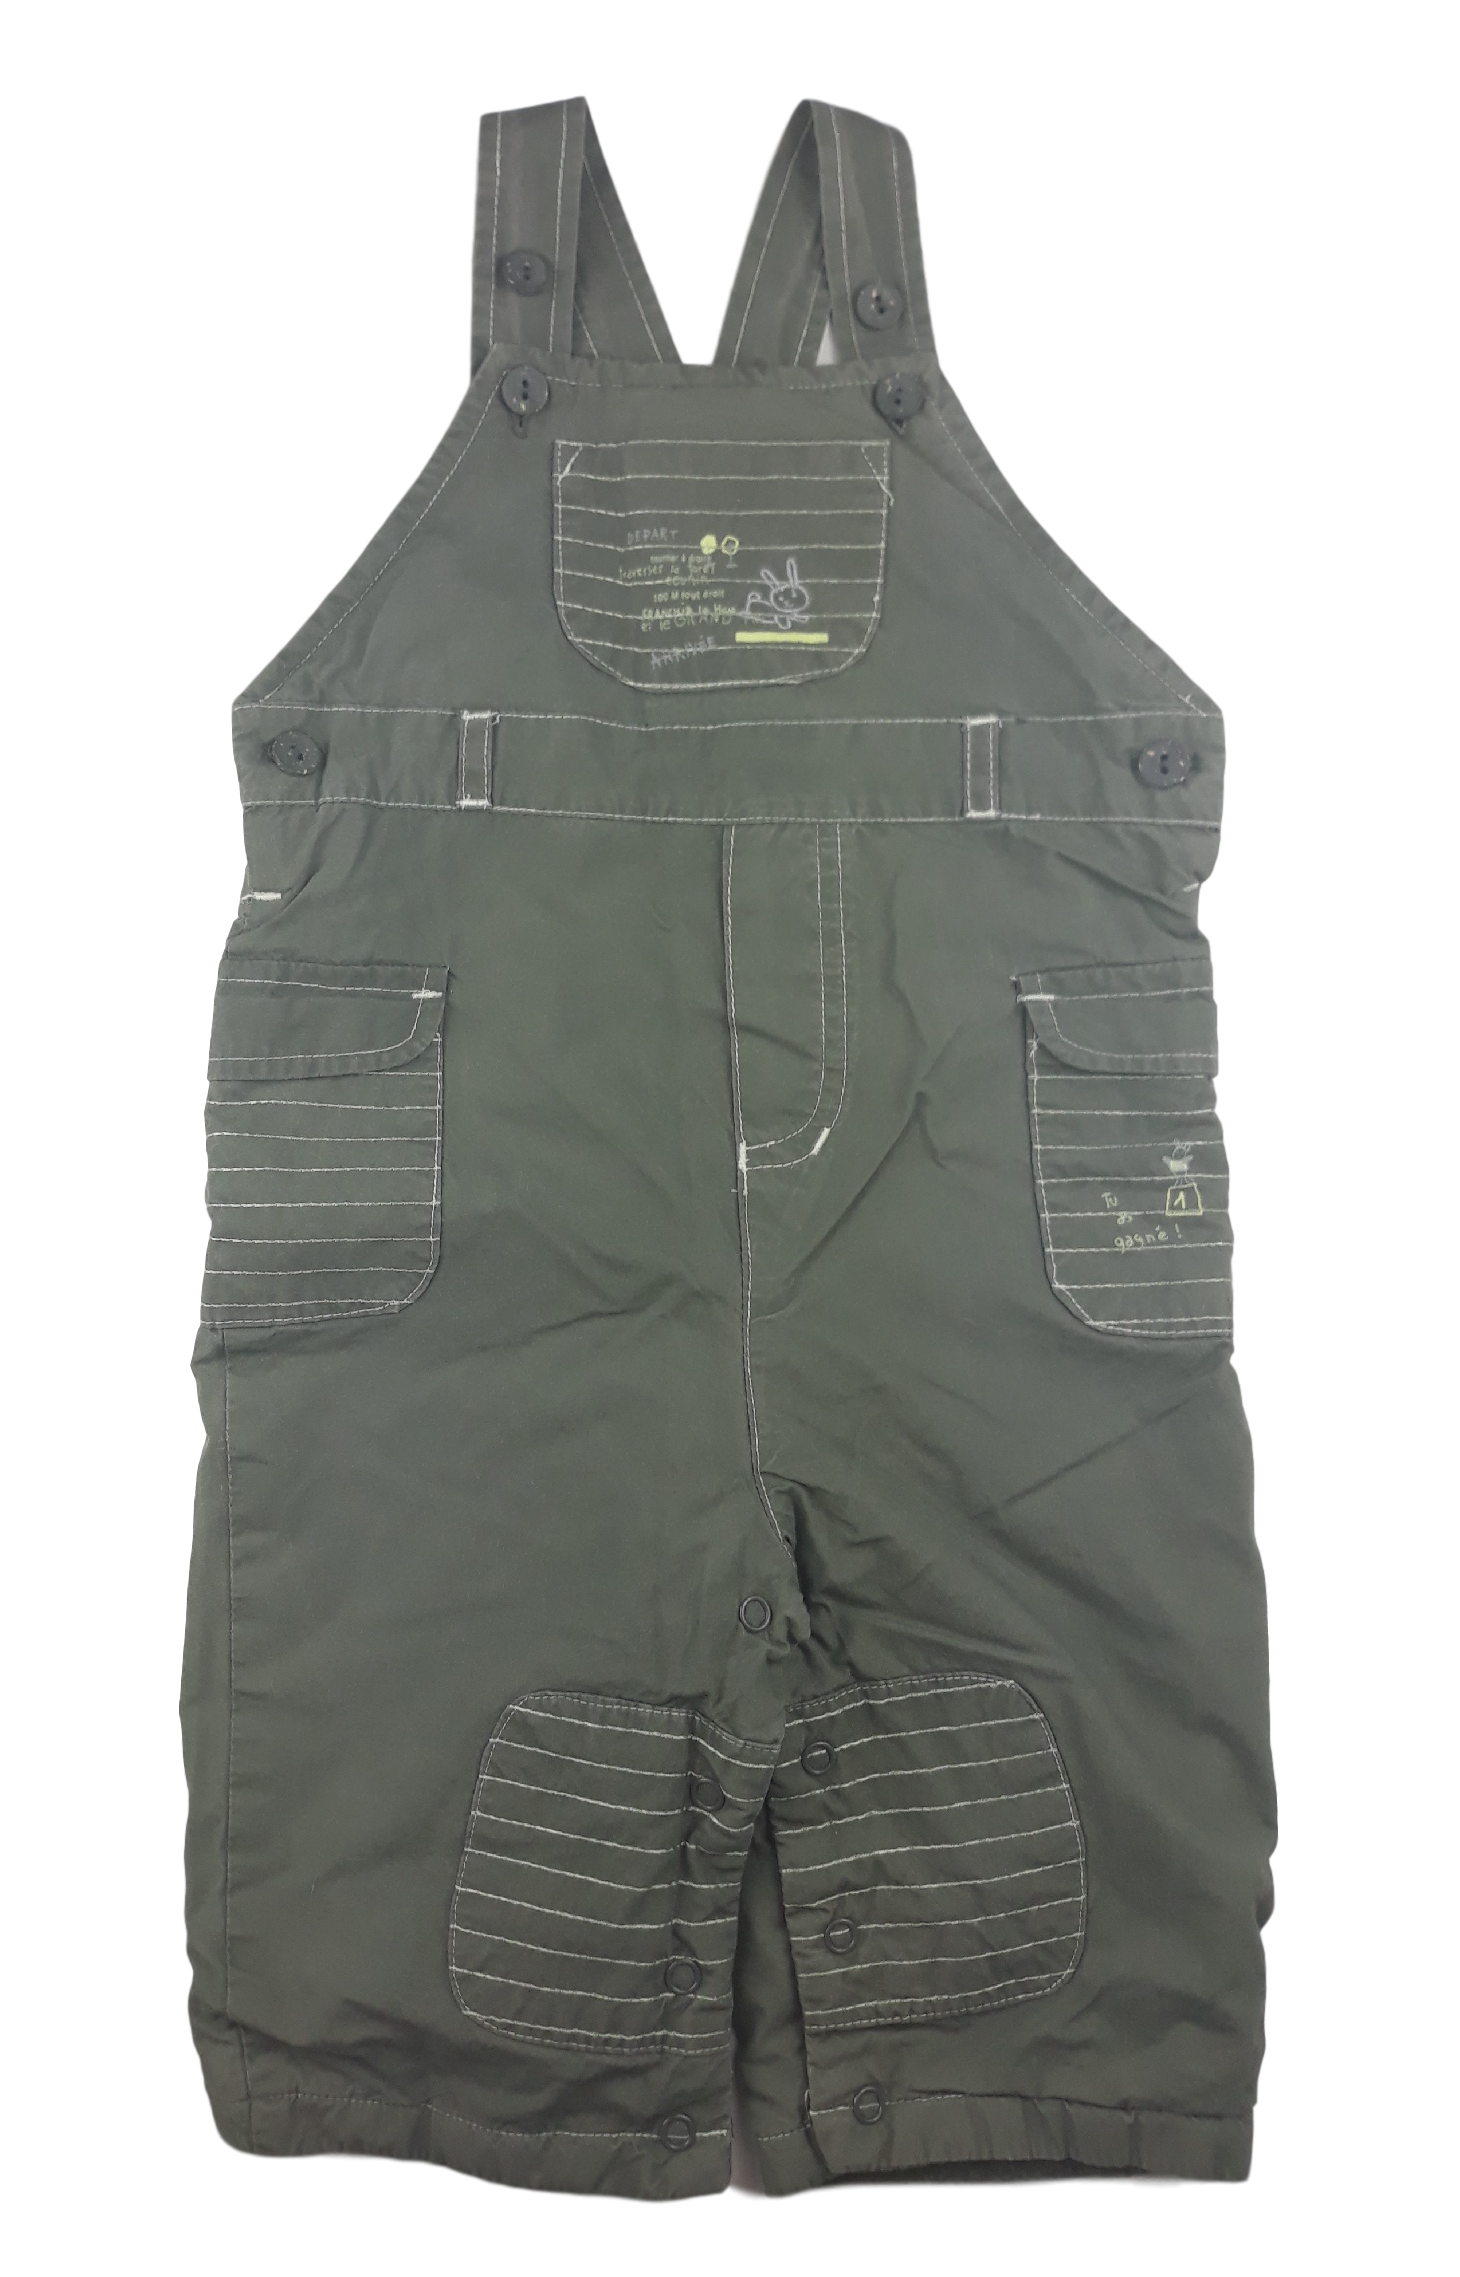 Sergent Major - Taille 9 mois